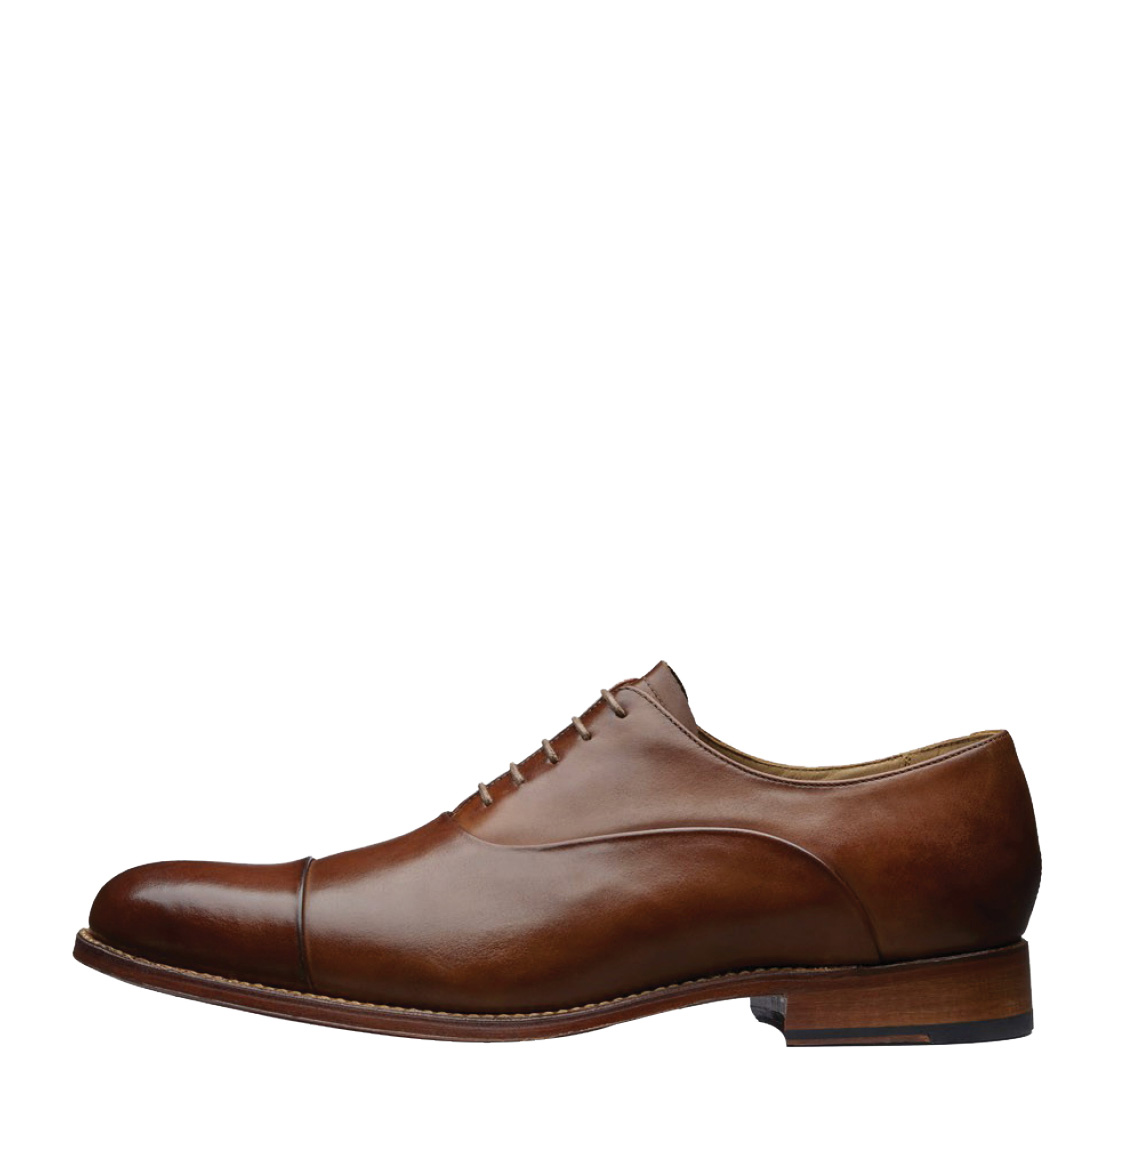 Grenson Bert Tan Oxford Leather Shoes Brown